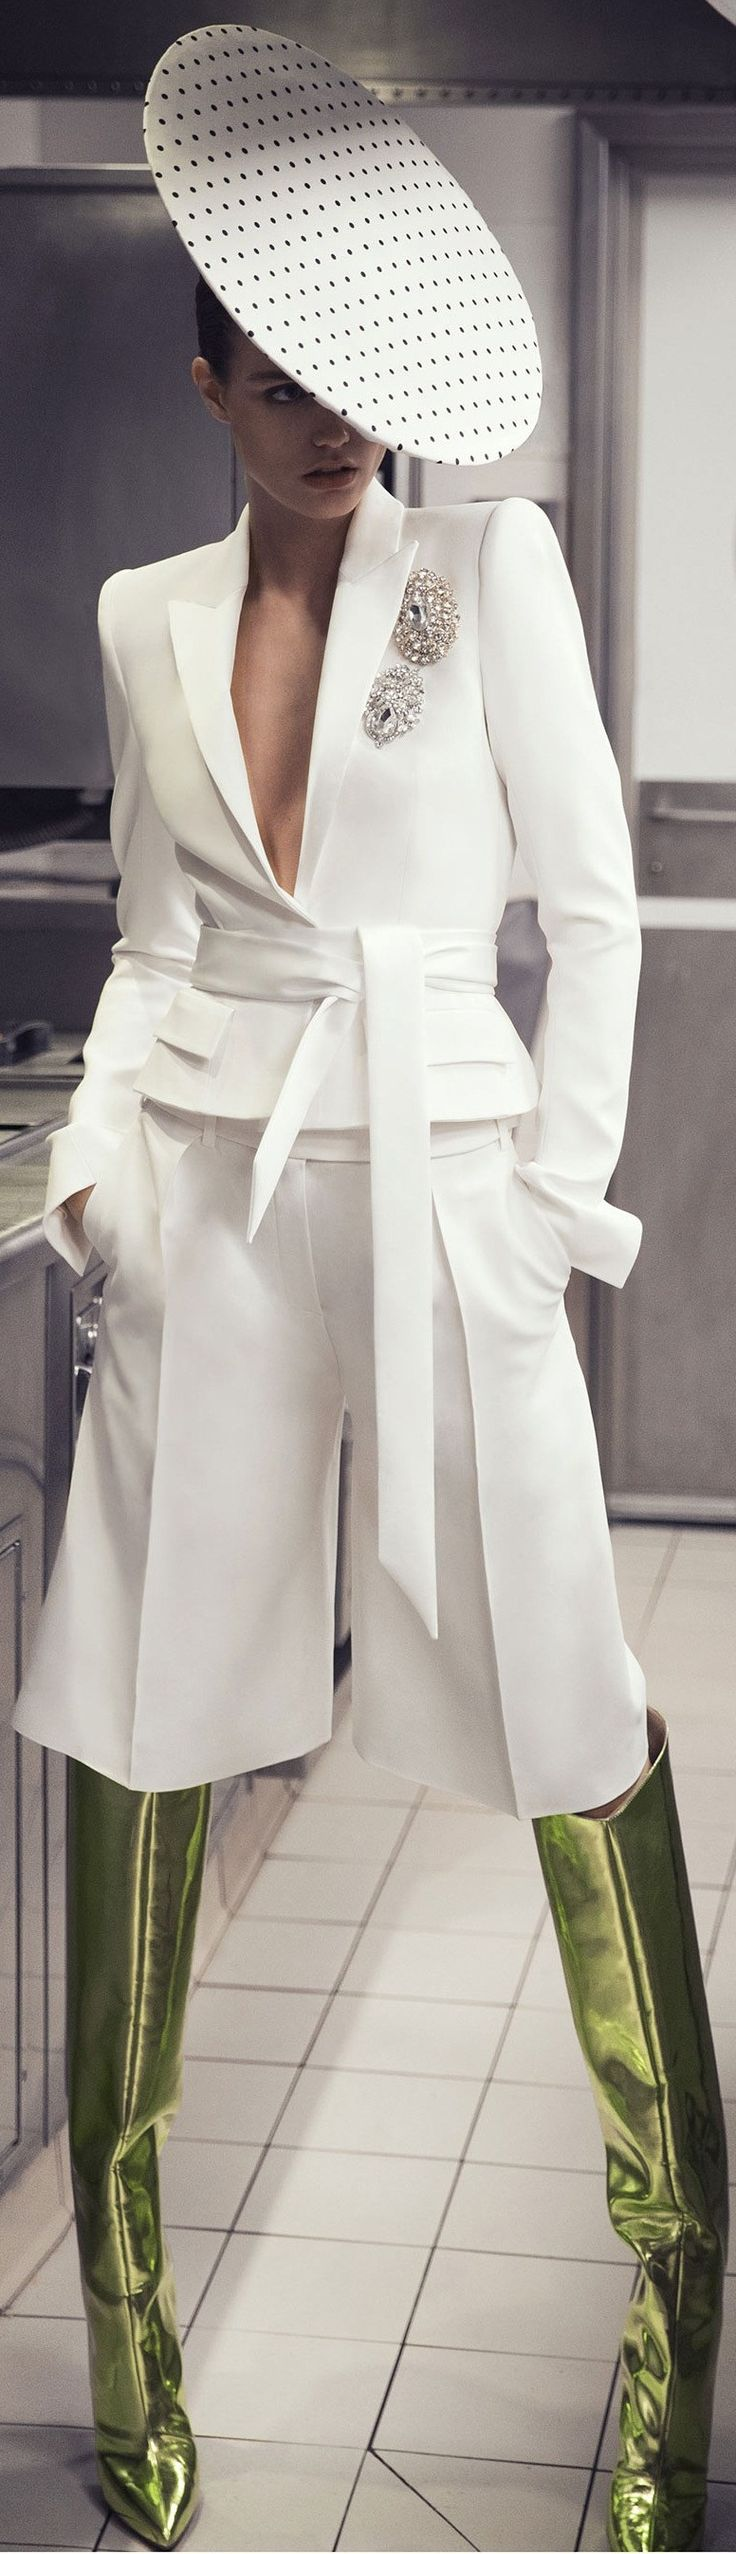 Alexandre Vauthier Spring '18.I love it except the hat and boots  one of my favorite all white looks. The knee length trousers is gorgeous with the suit and belt and the touch of embroidery